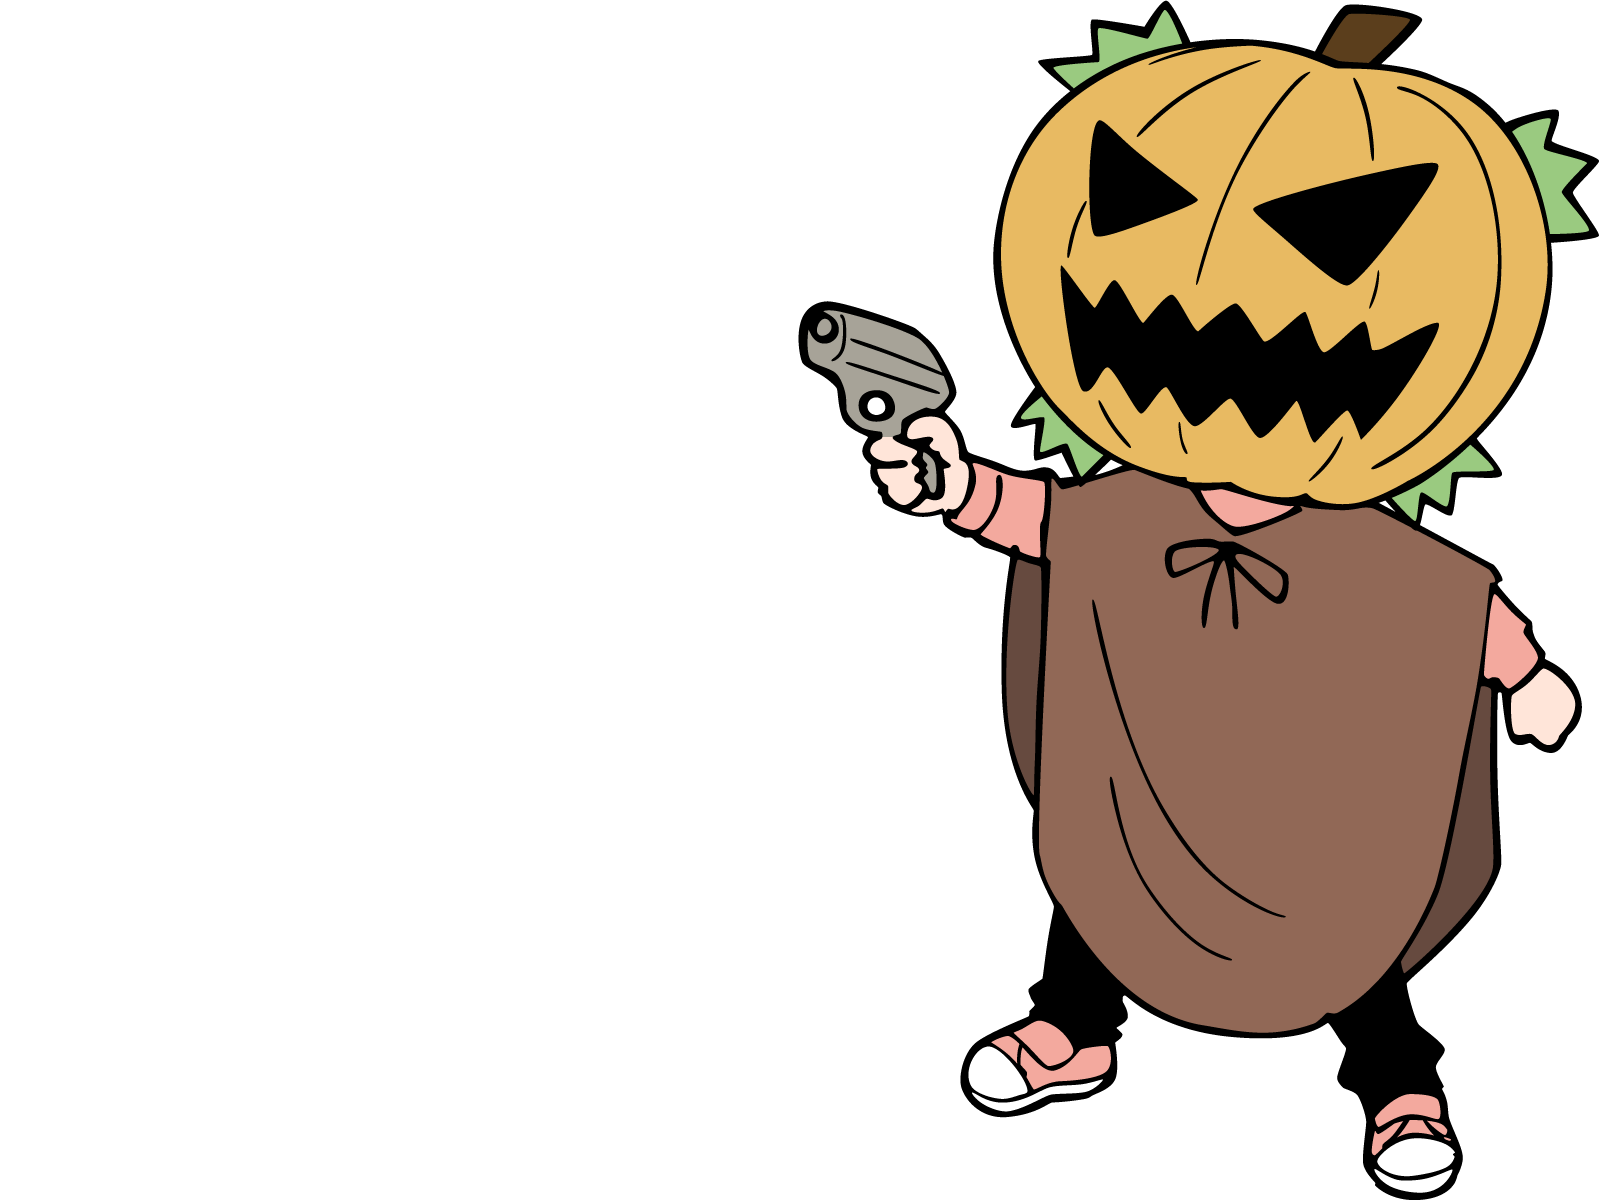 Guns clipart boy. Wallpaper halloween pumpkin mask